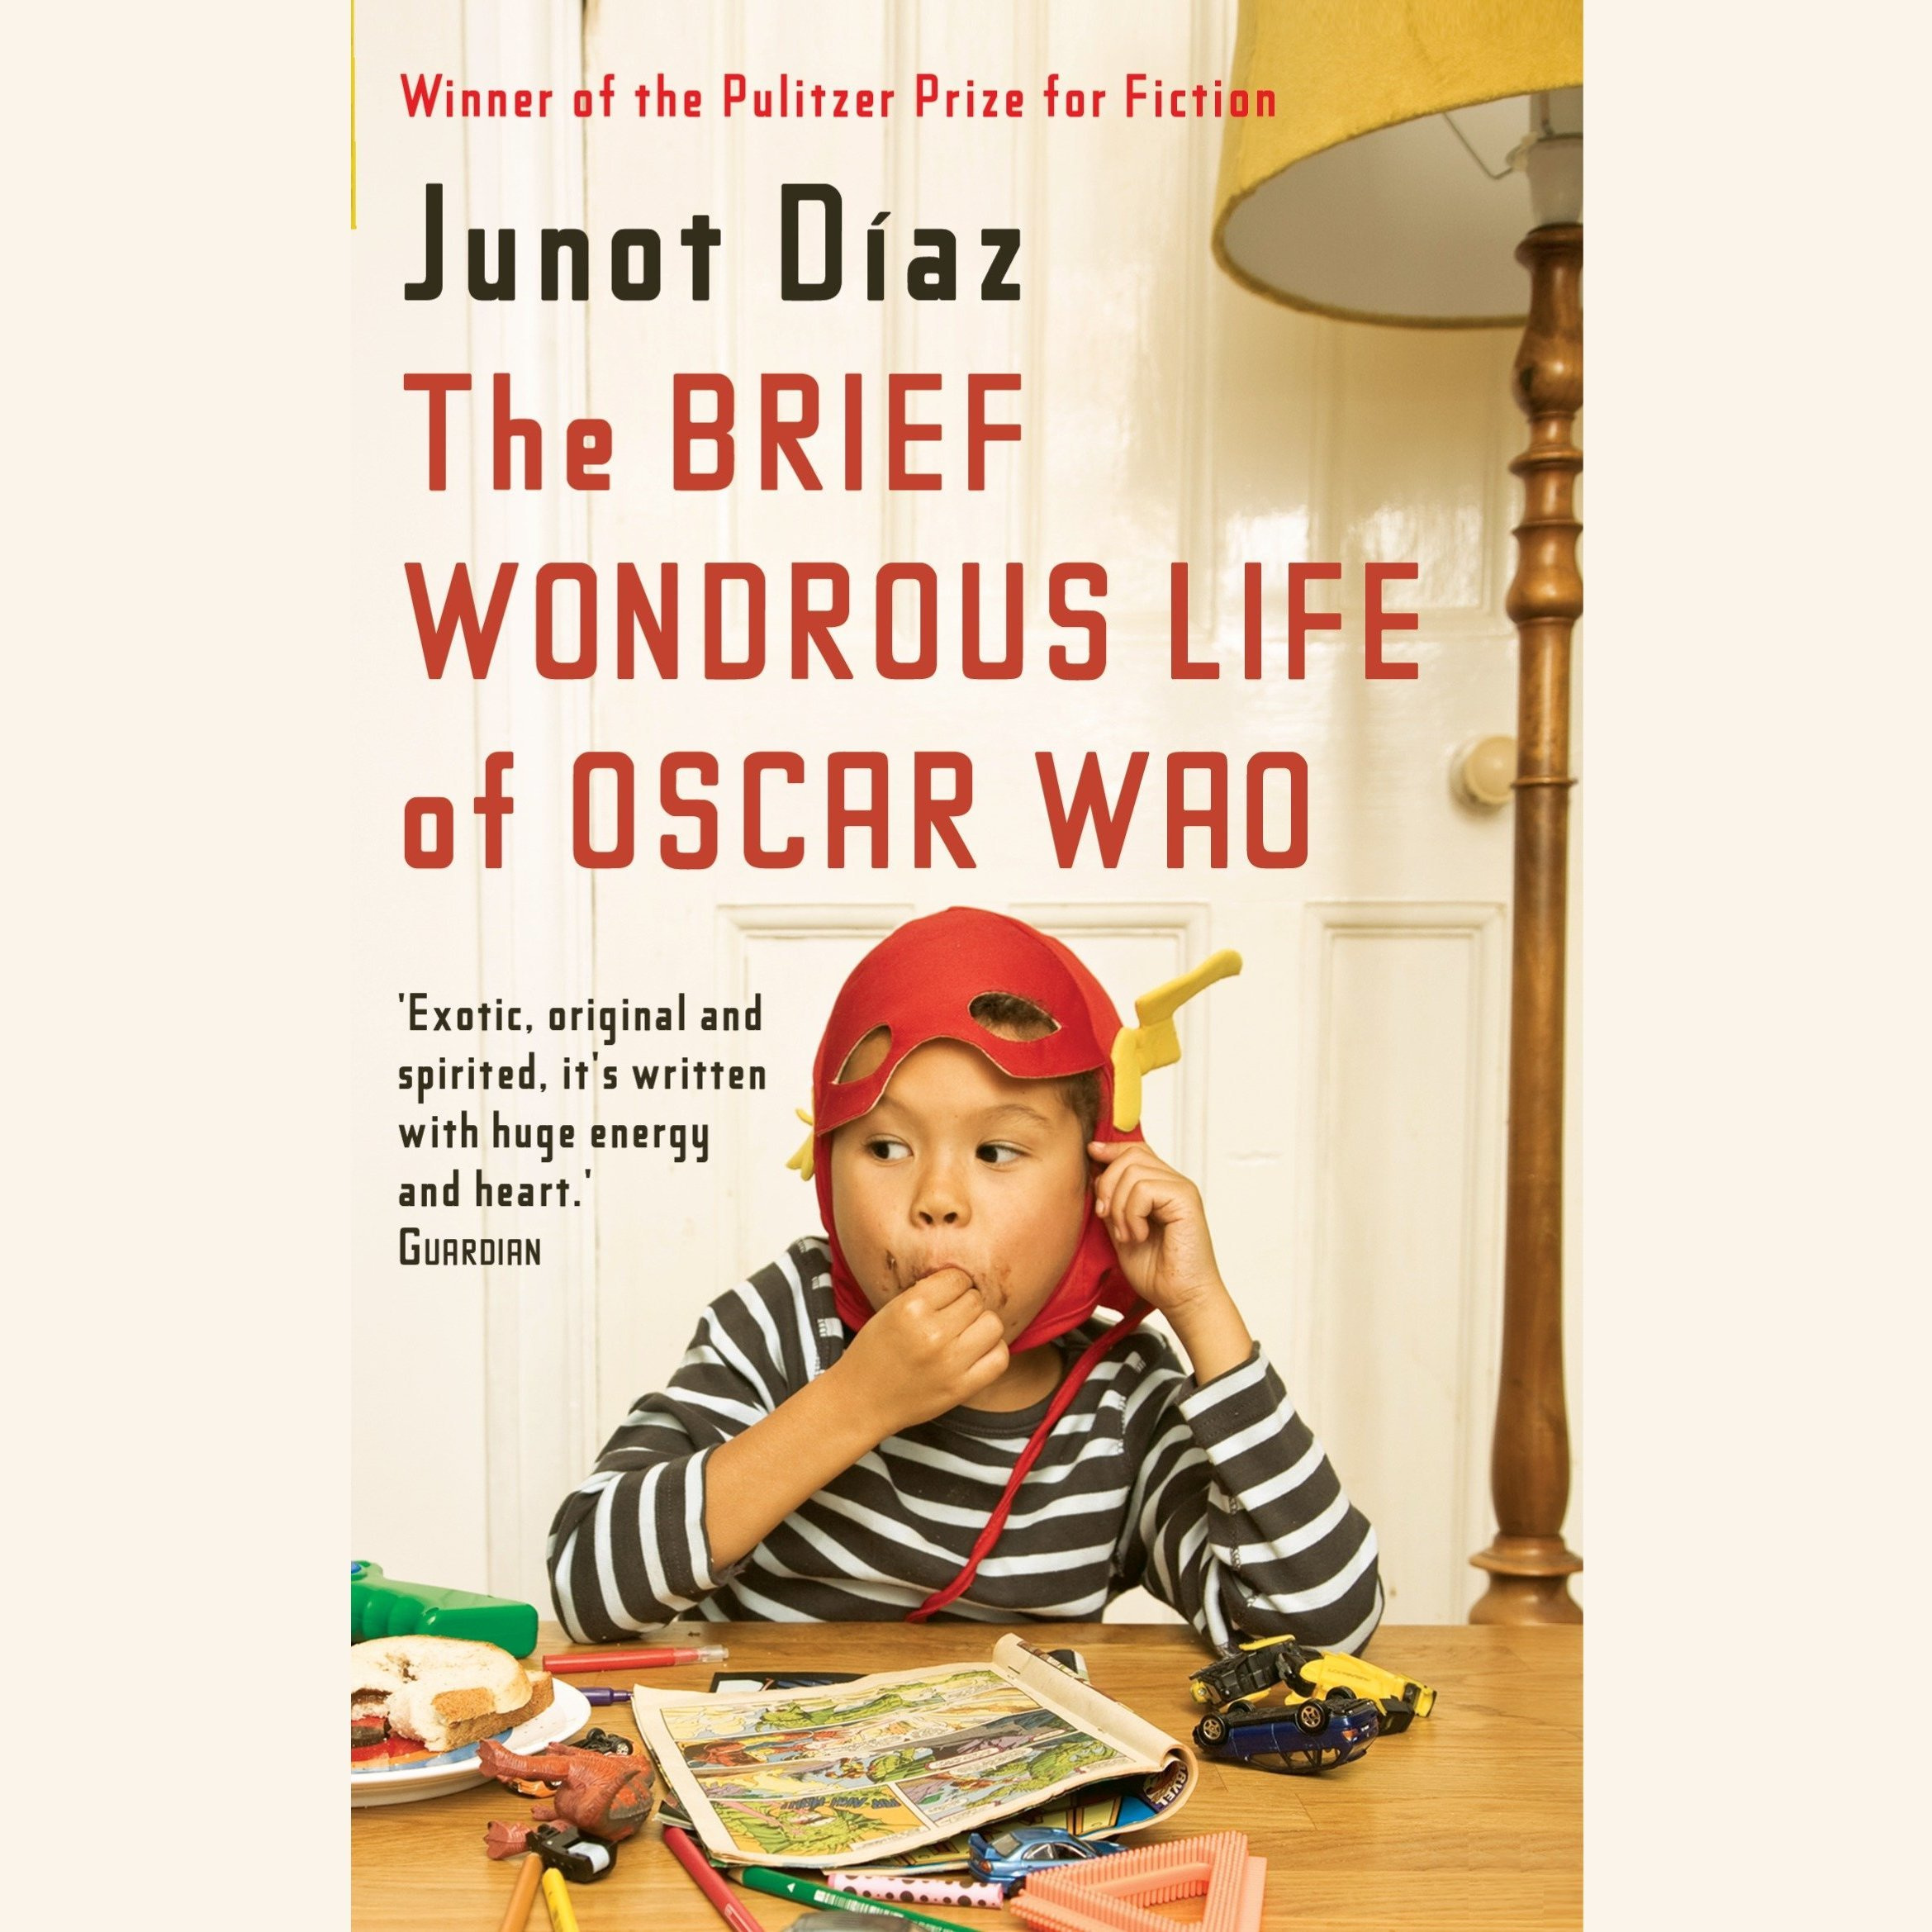 the brief wondrous life of wao Symbolism in junot díaz's the brief wondrous life of oscar wao learn about the different symbols such as the golden mongoose in the brief wondrous life of oscar wao and how they contribute to the plot of the book.